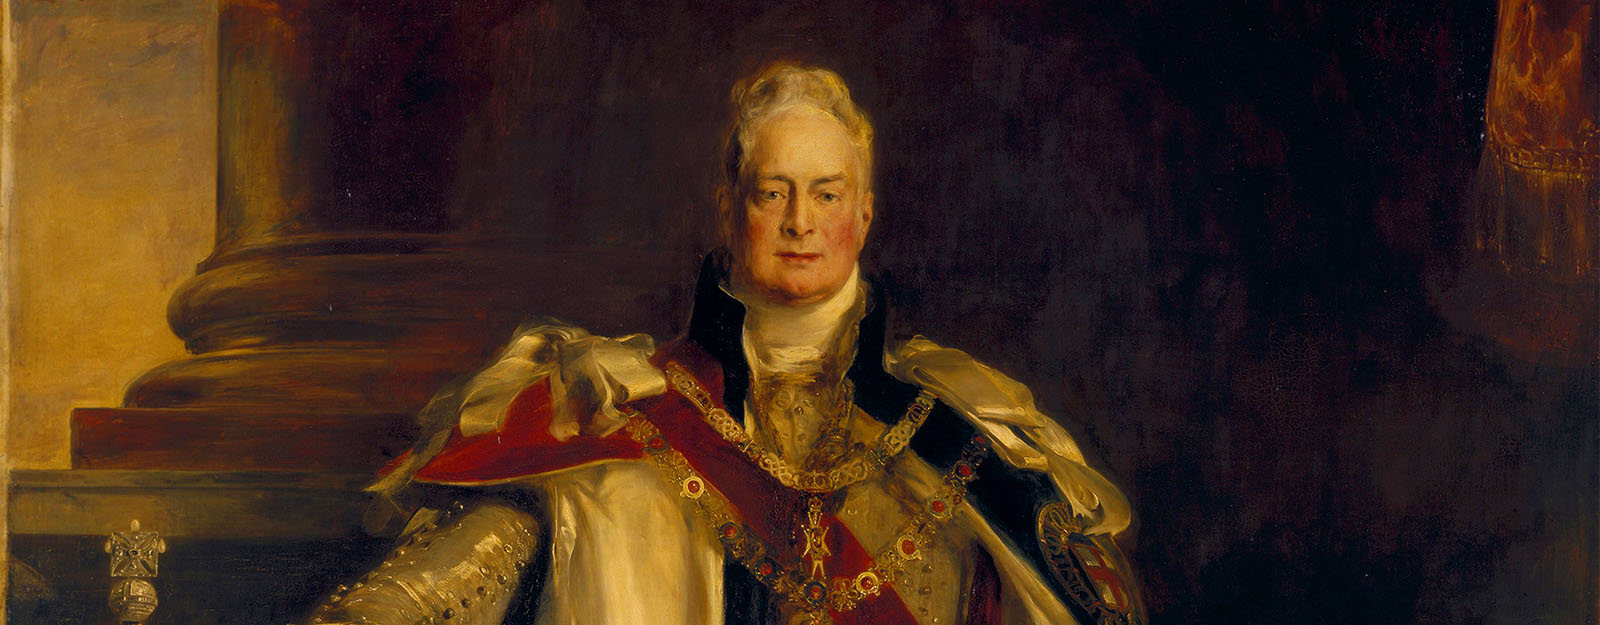 Detail of William IV portrait by WIlkie